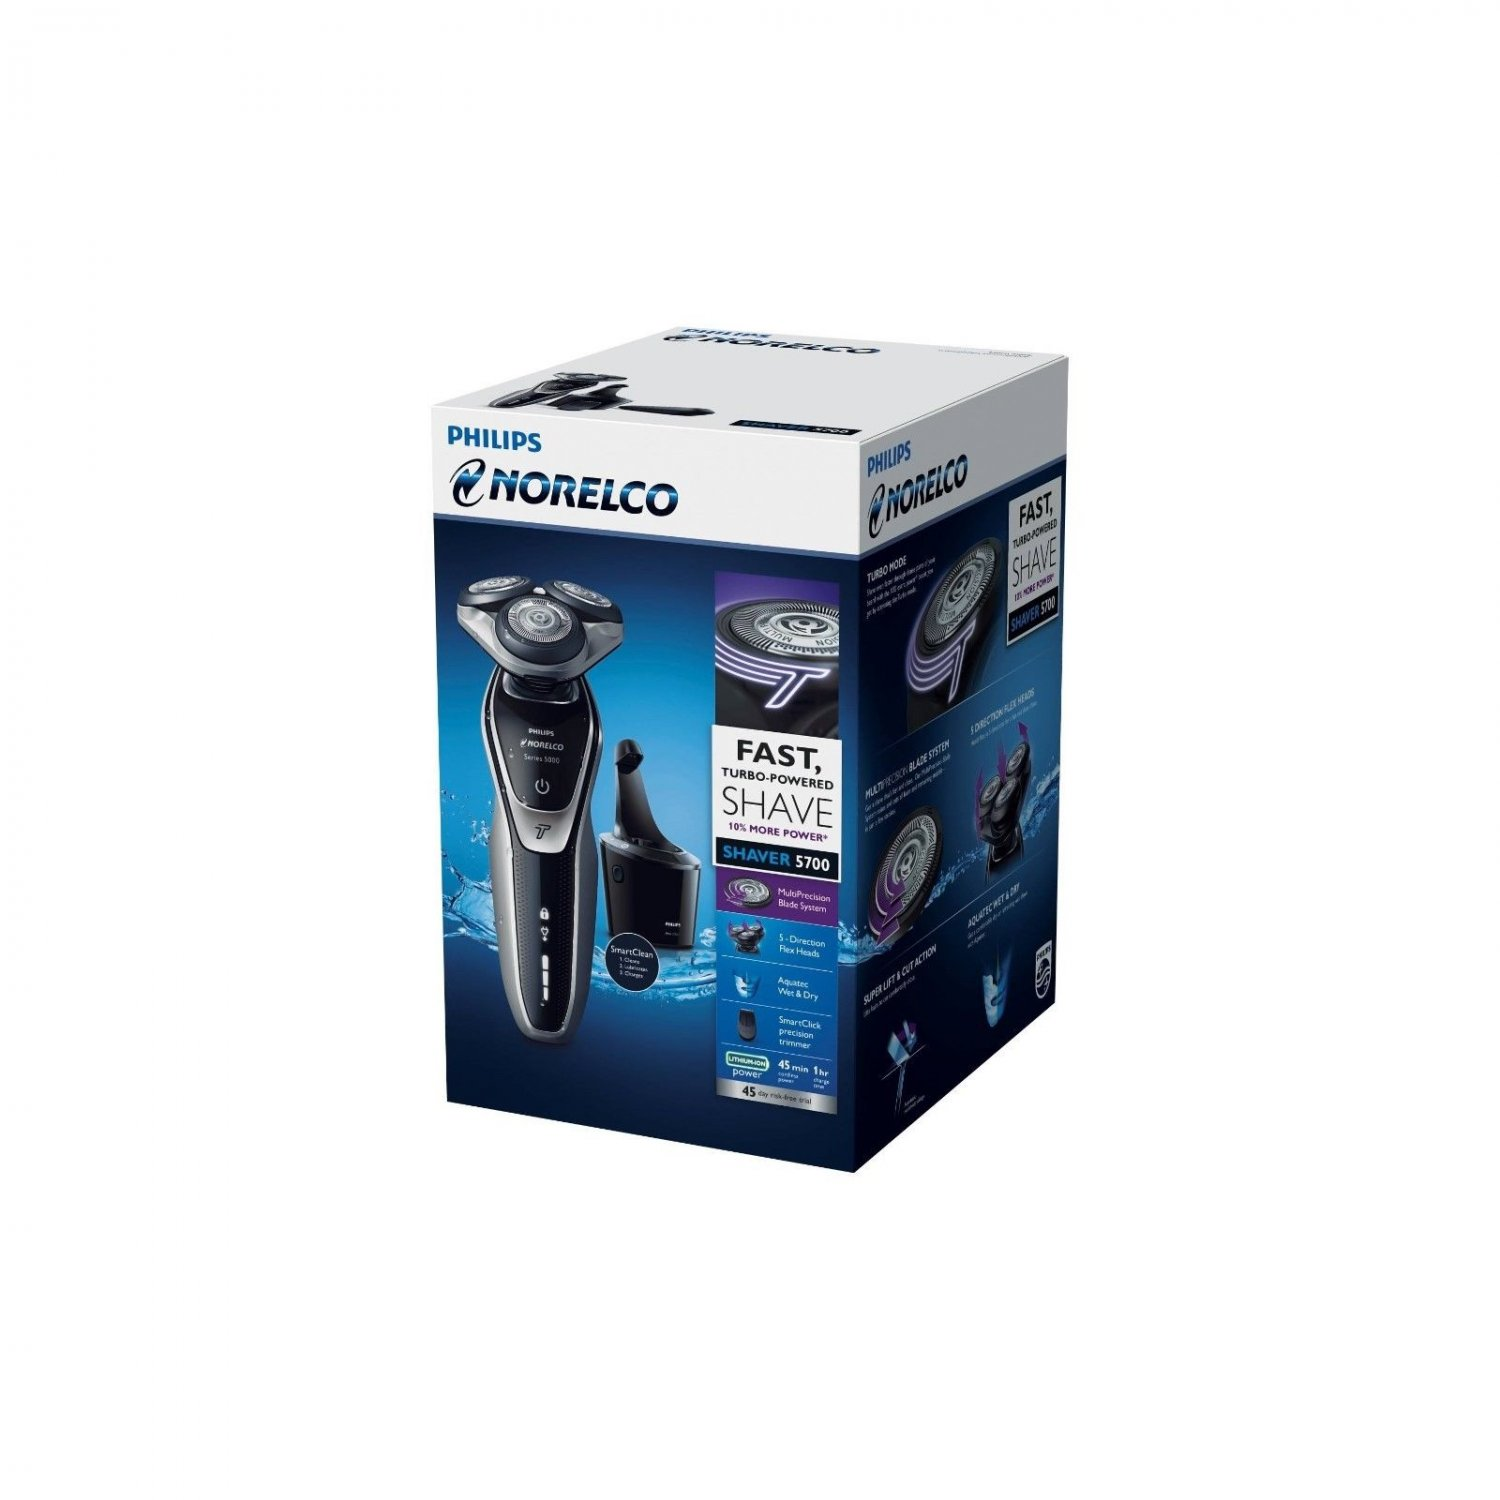 Philips Norelco Electric Shaver 5700, S5370/81 NEW